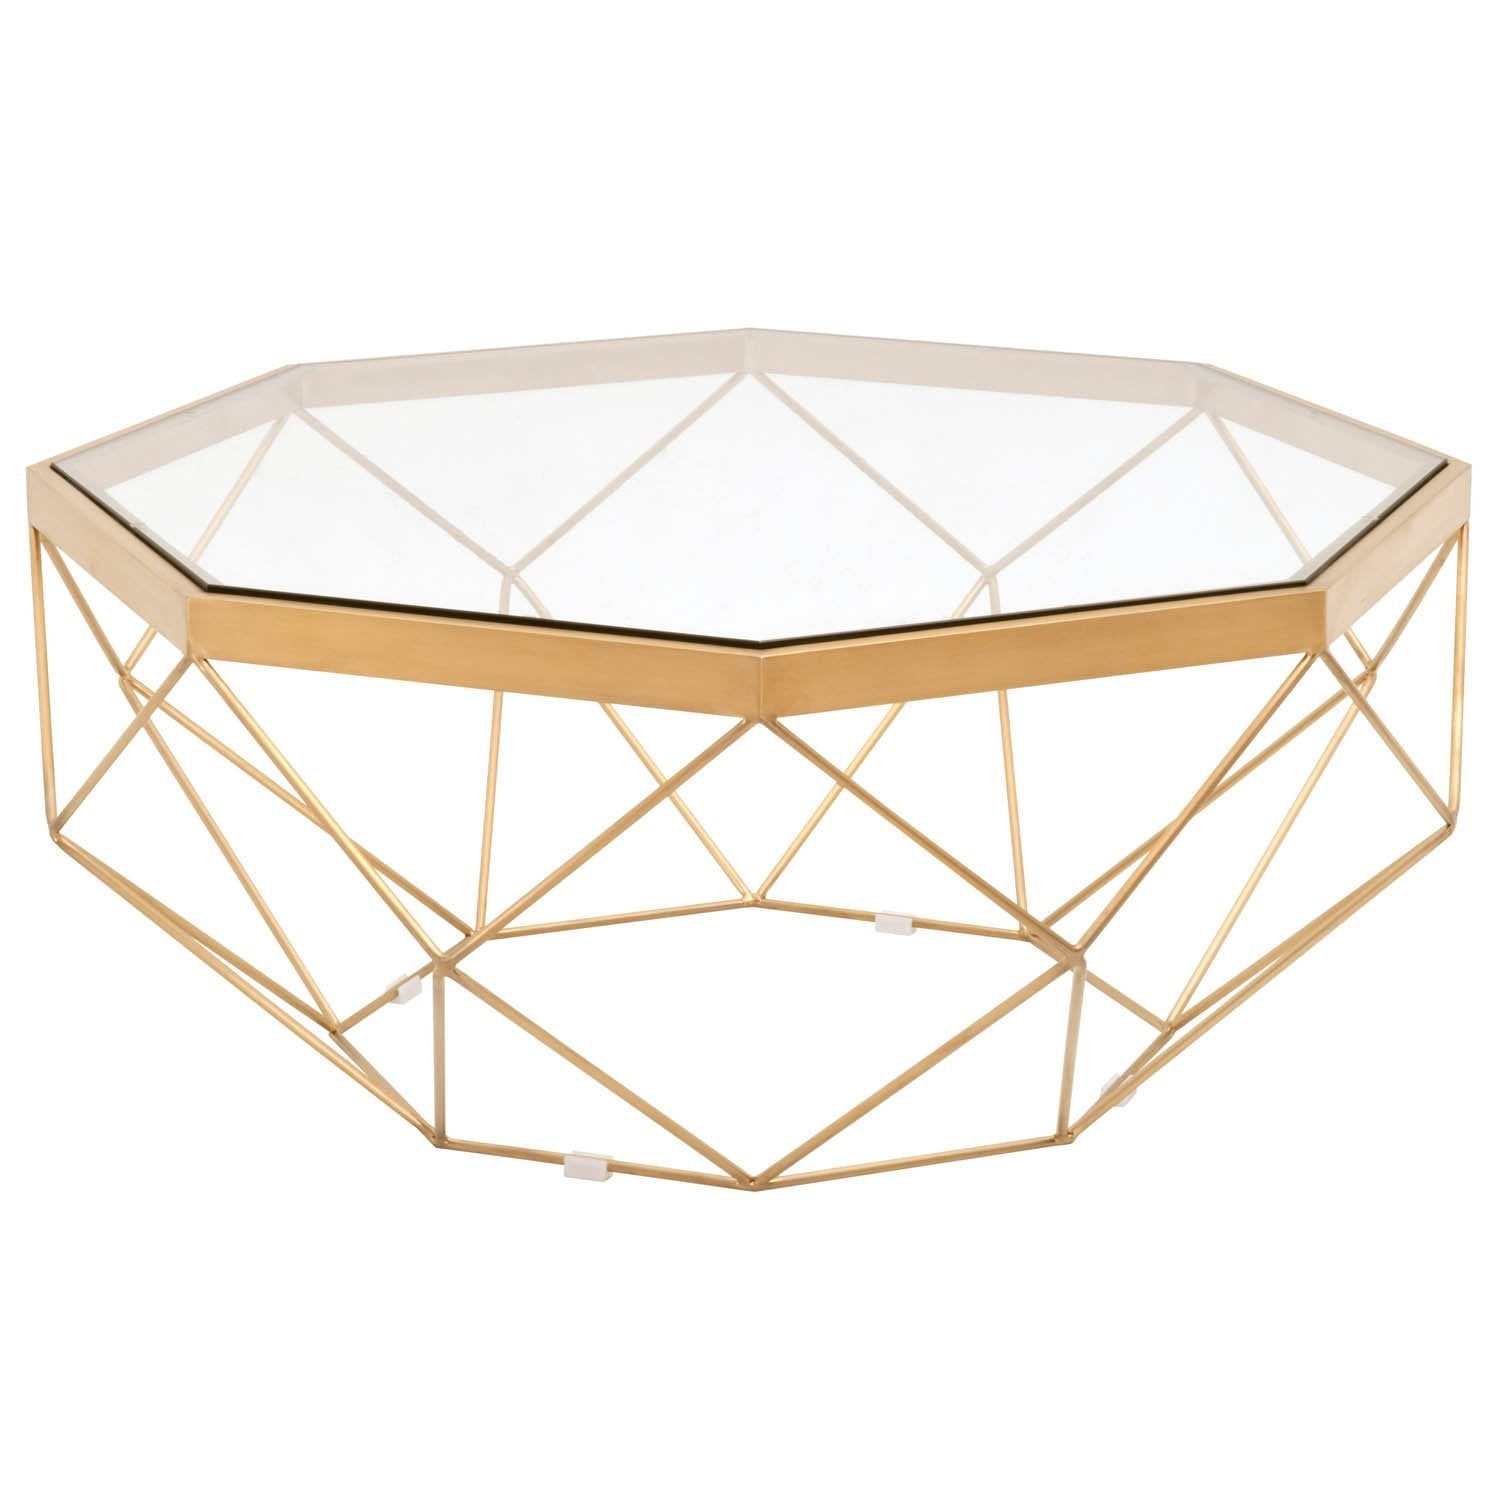 Origami Coffee Table in Brushed Gold